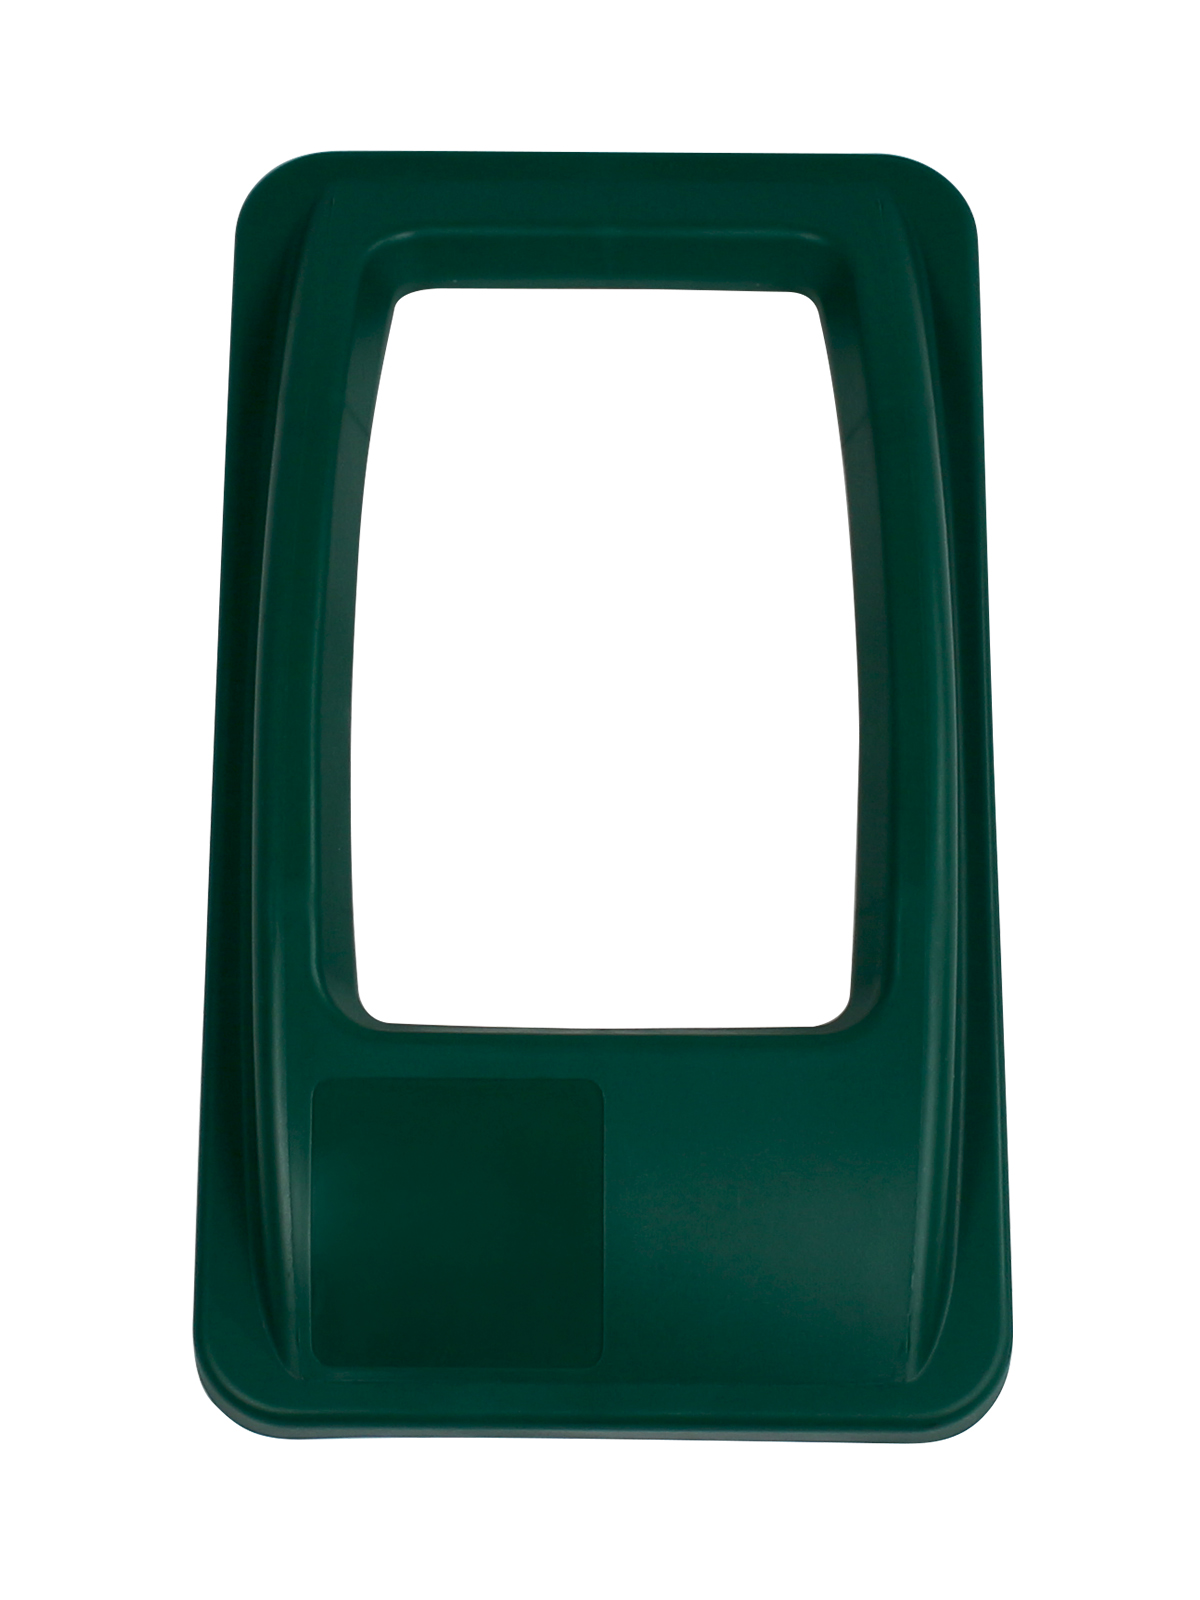 WASTE WATCHER - Lid - Full - Dark Green